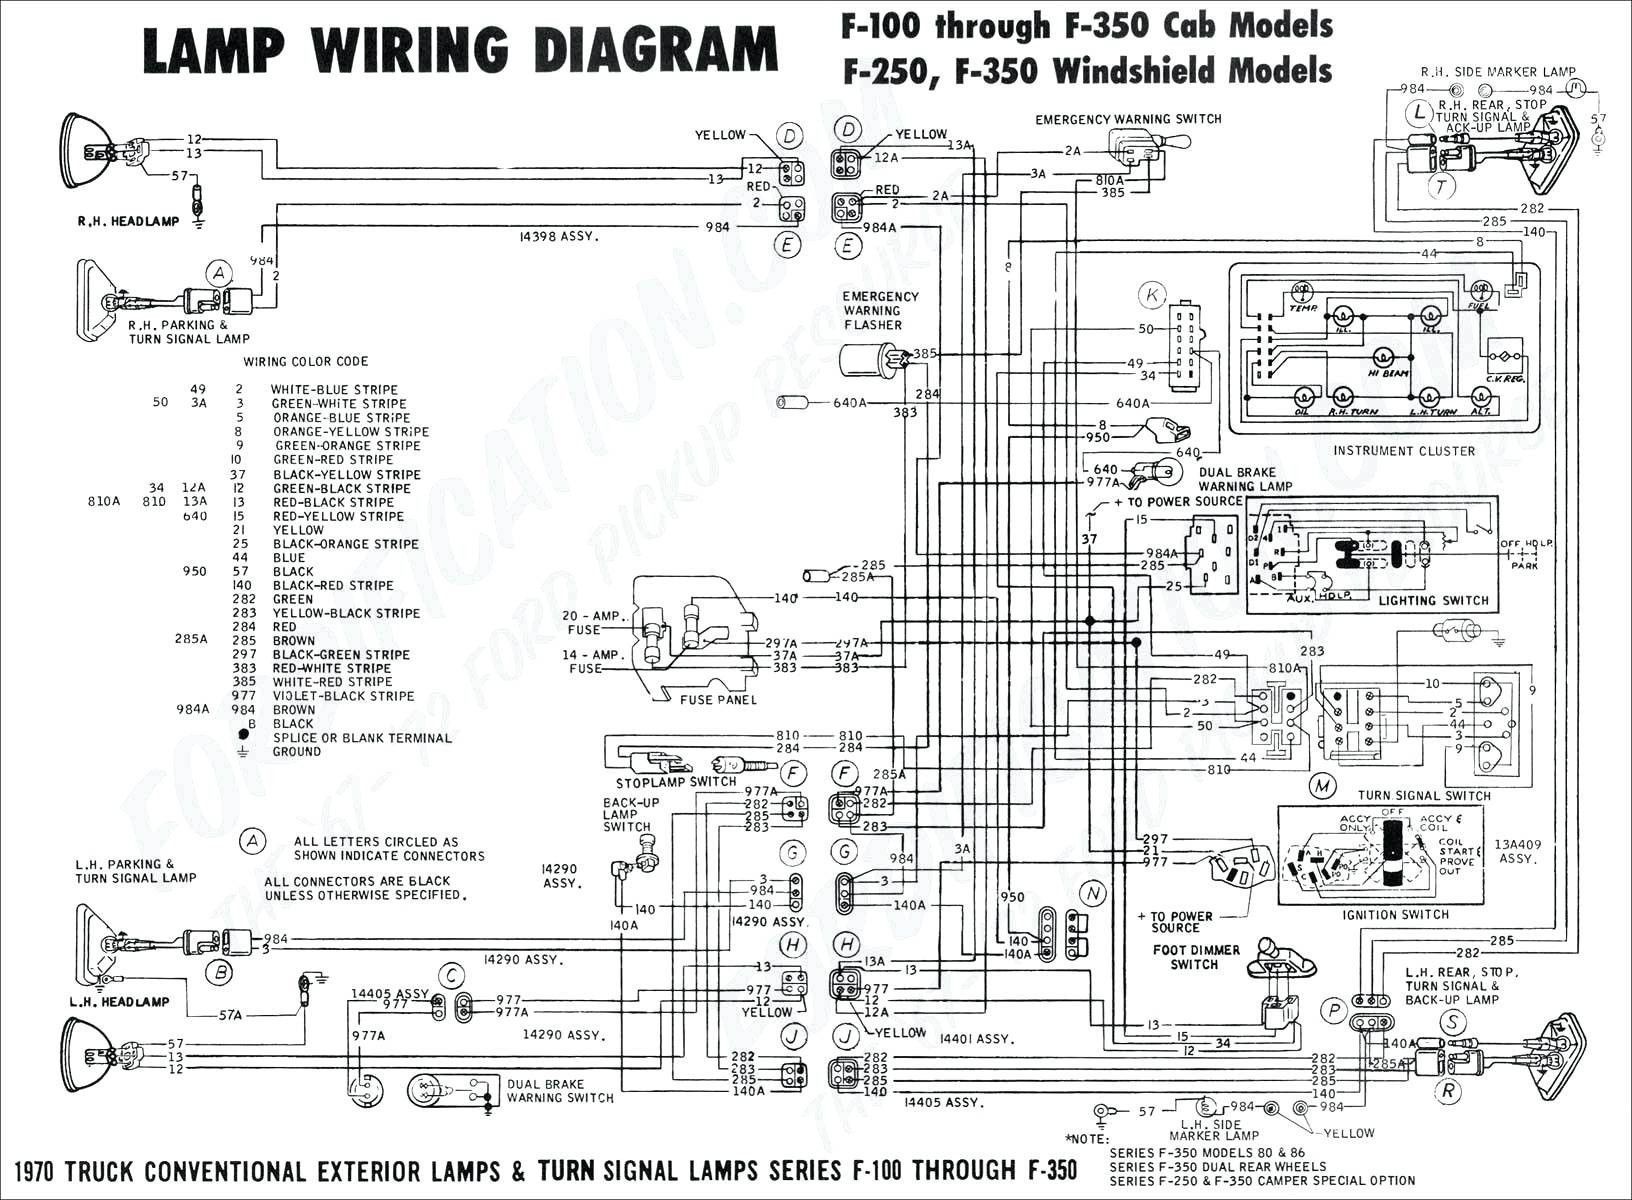 1996 ford Ranger Engine Diagram 07 F250 Wiring Diagram Another Blog About Wiring Diagram • Of 1996 ford Ranger Engine Diagram 1978 F100 ford Ranger Wiring Another Blog About Wiring Diagram •